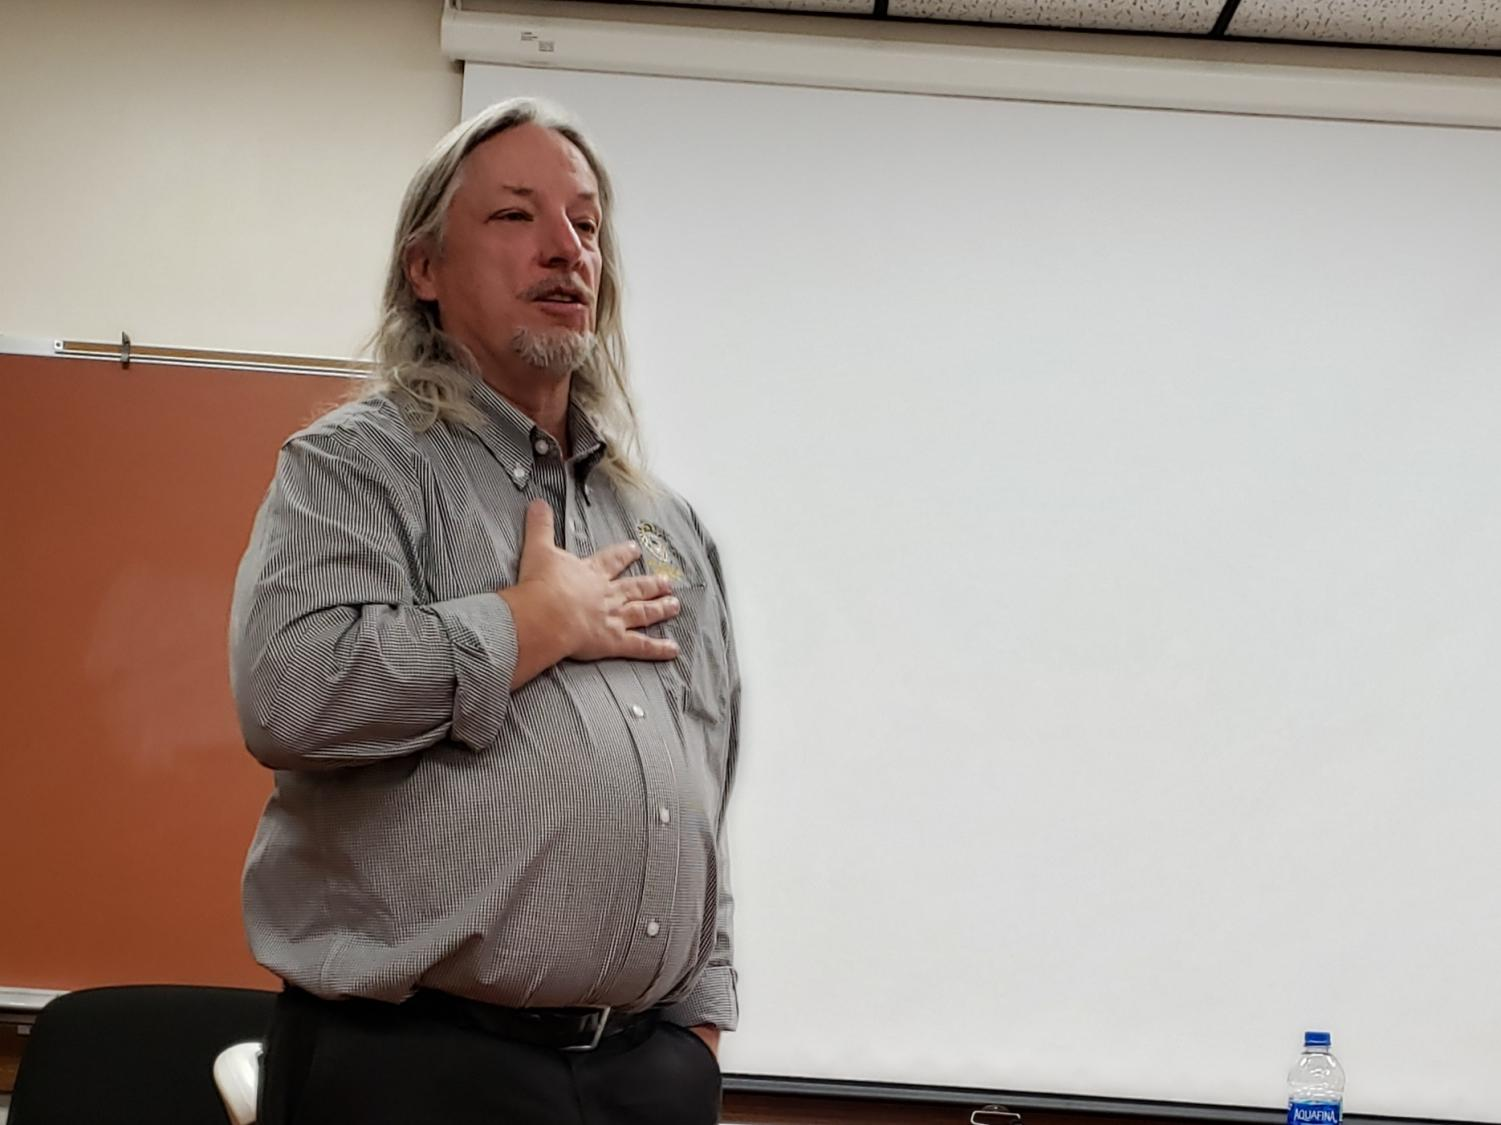 On Oct. 30, Career Speaker Robert Duffy speaks about Drug and Alcohol Counseling in Room 103 during PRIDE Time. Duffy was a Drug and Alcohol Wellness Network Coordinator at Fort Hays State University.